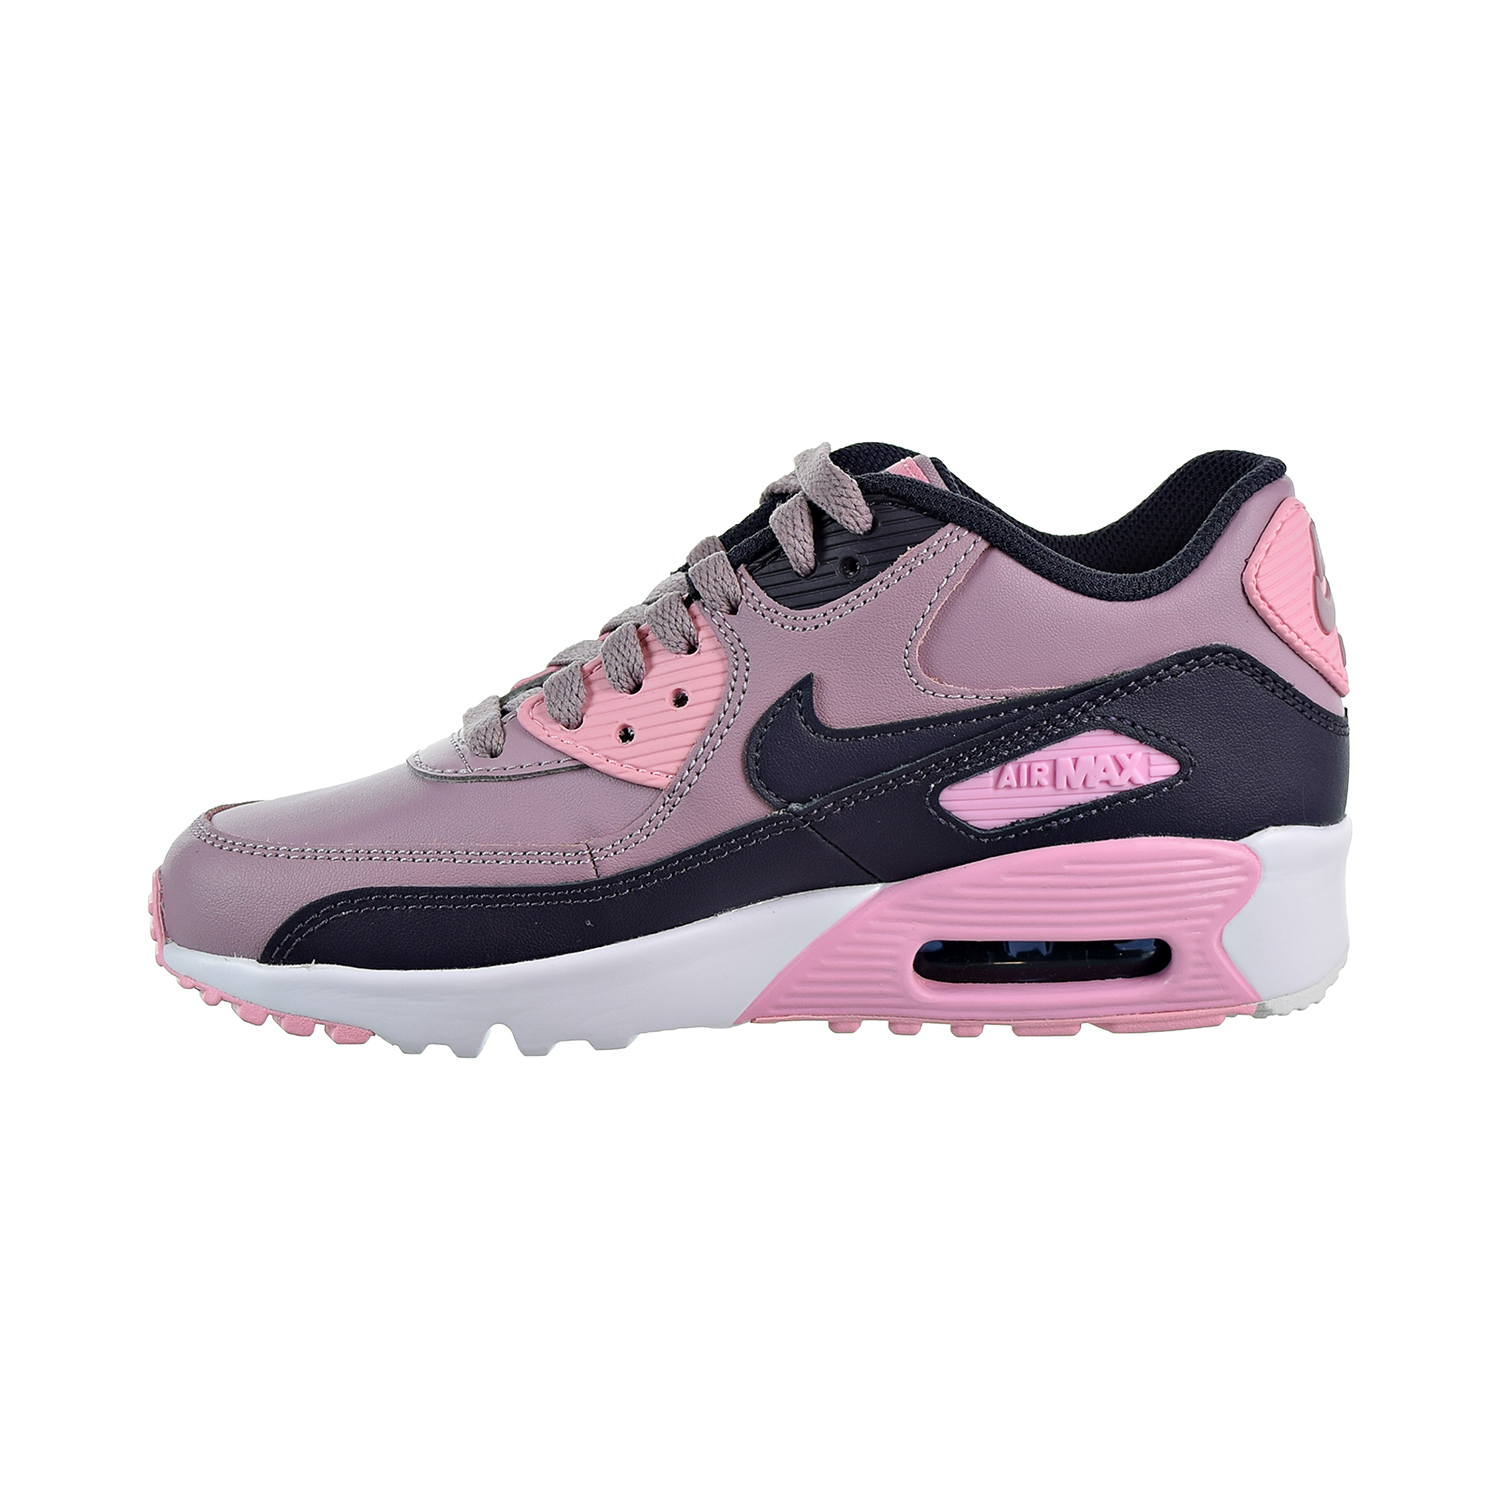 the latest 6313a 97f86 Nike Air Max 90 Leather Big Kids  Shoes Elemental Rose Gridiron Pink White  833376-602